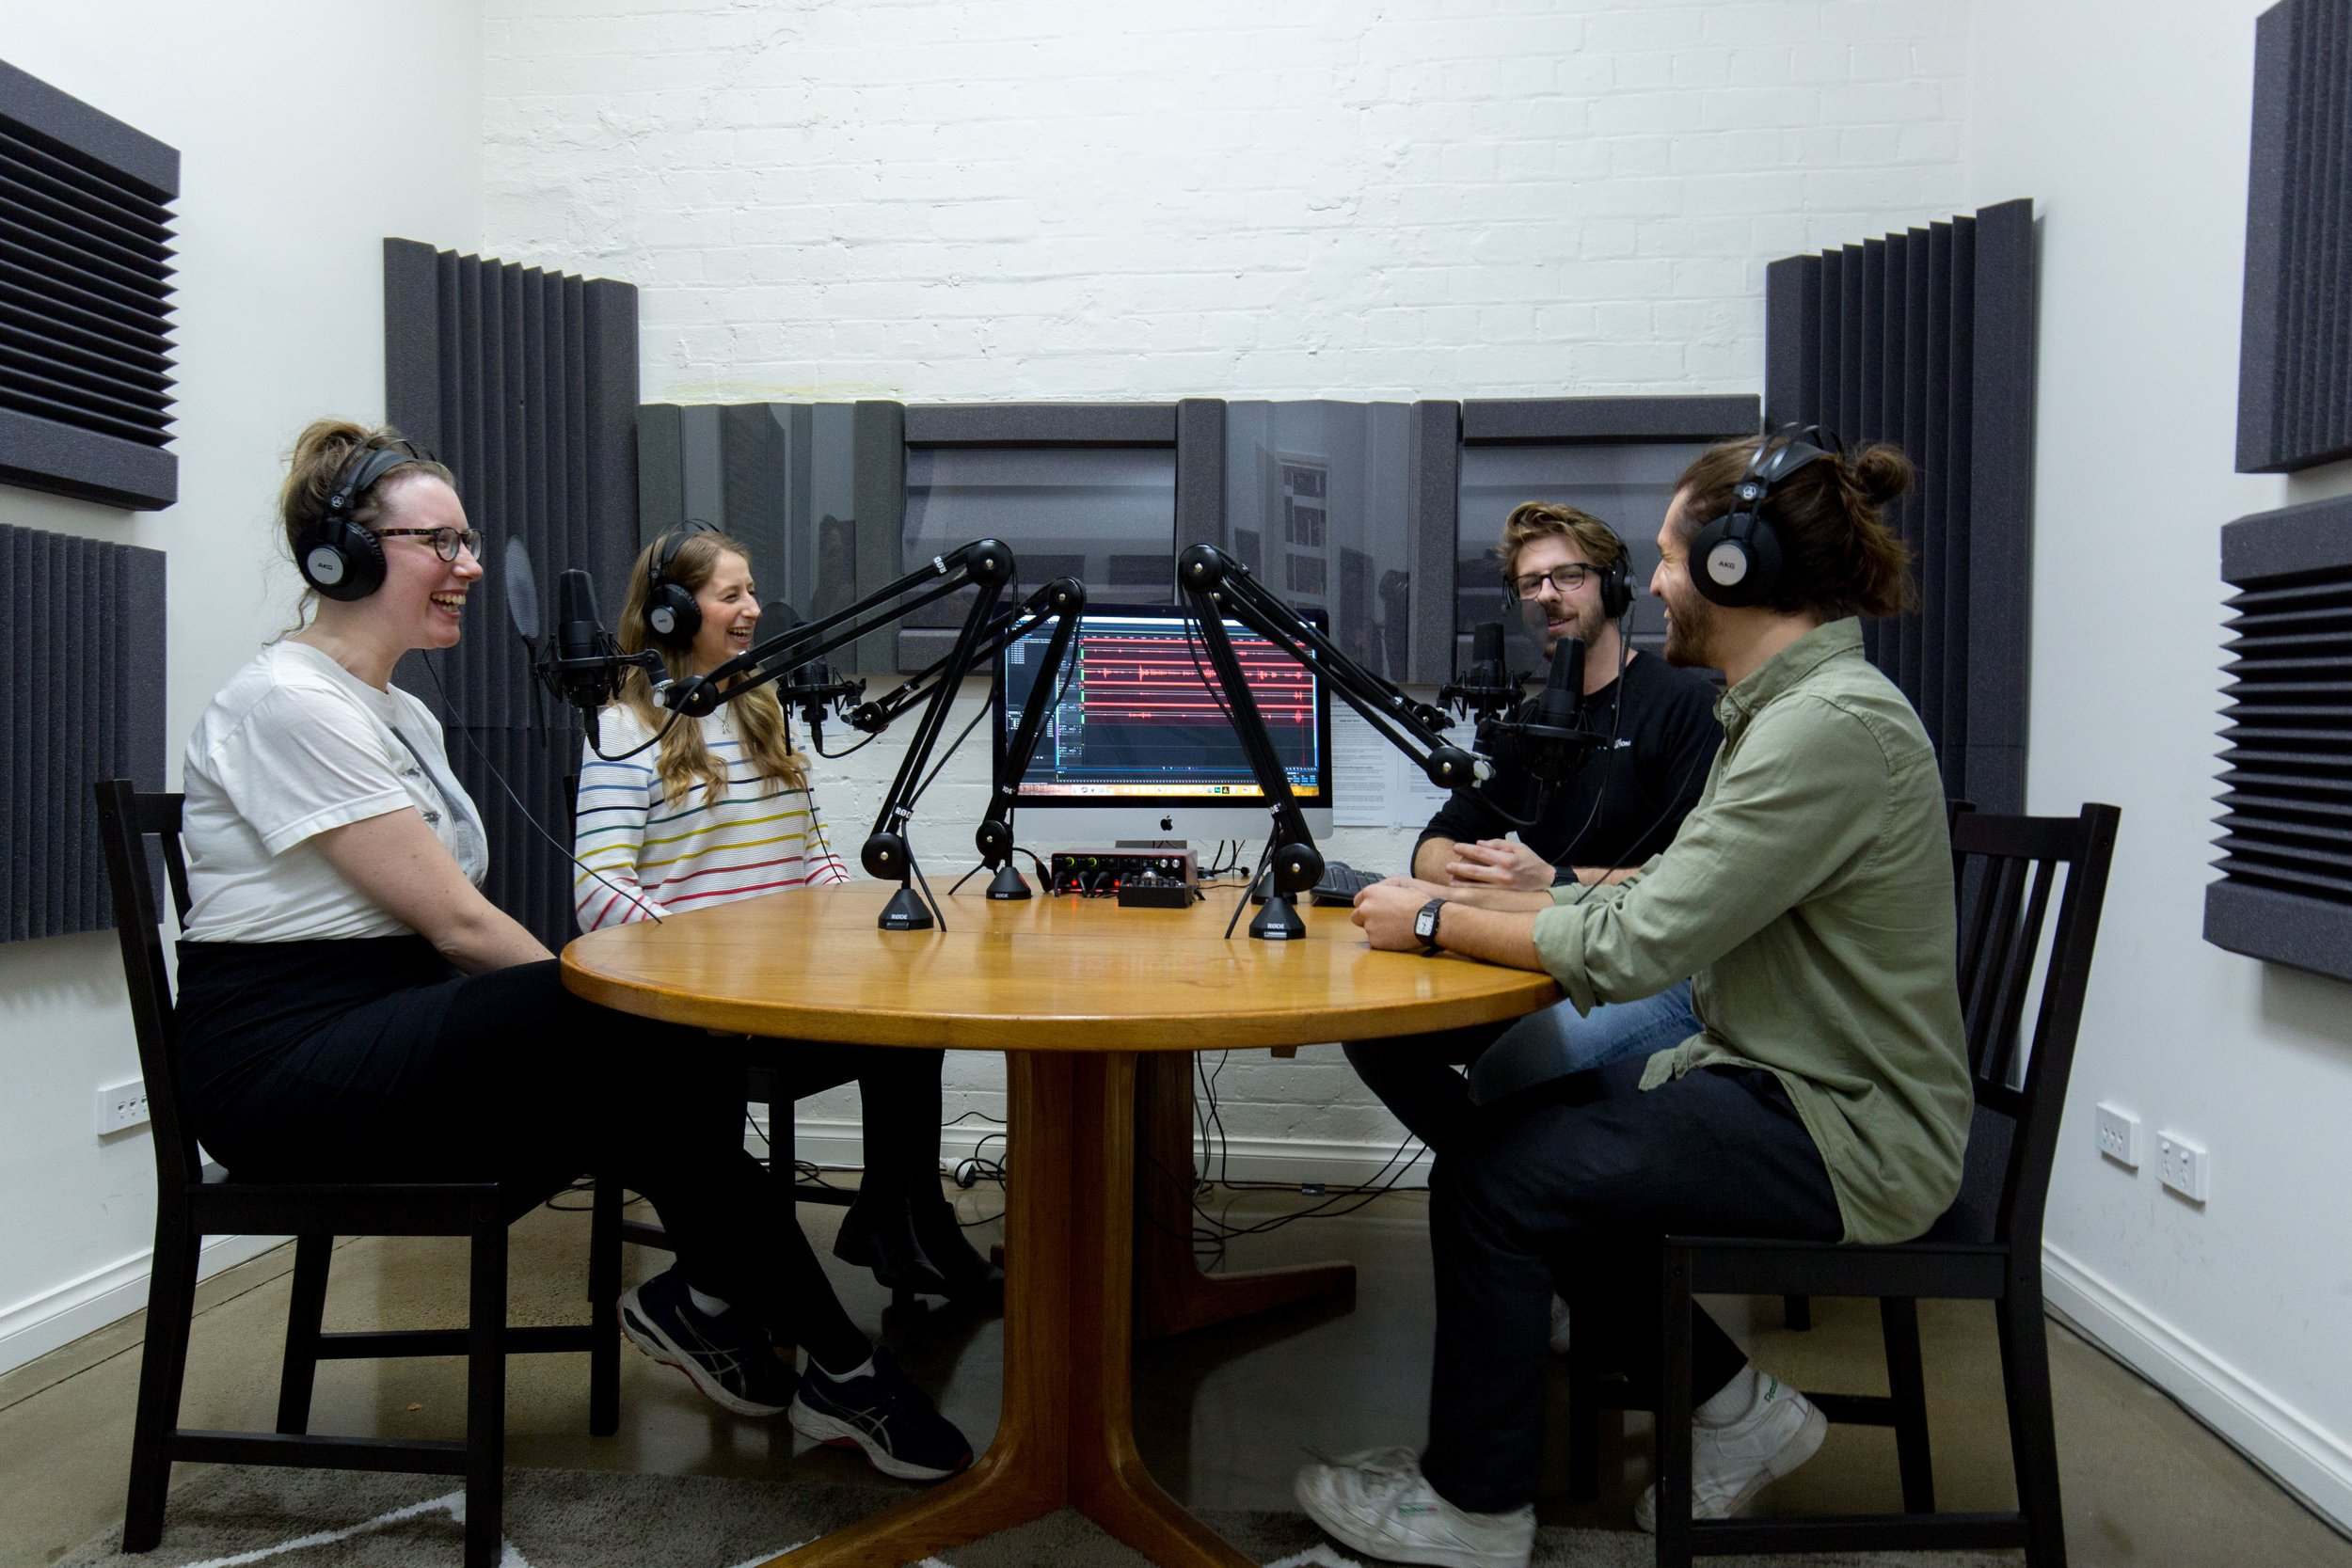 Podcast Studio Brunswick East, Melbourne